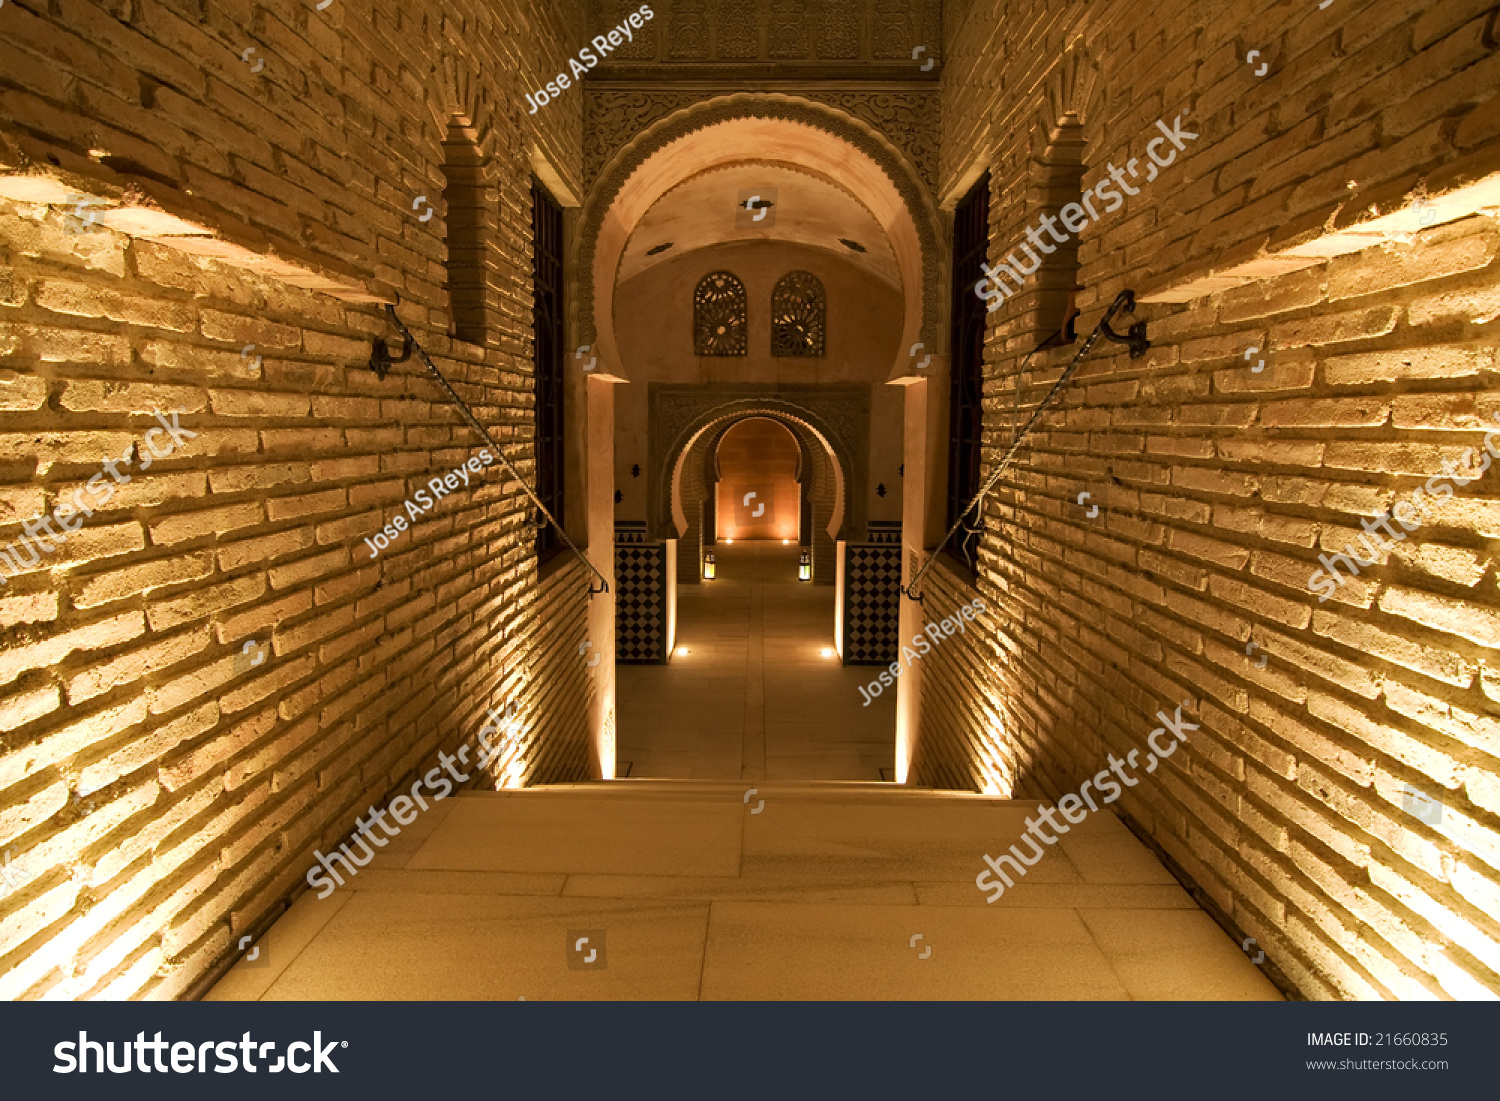 Stock Interiors Com >> Ancient Palace Interior Arab Style Stock Photo 21660835 - Shutterstock